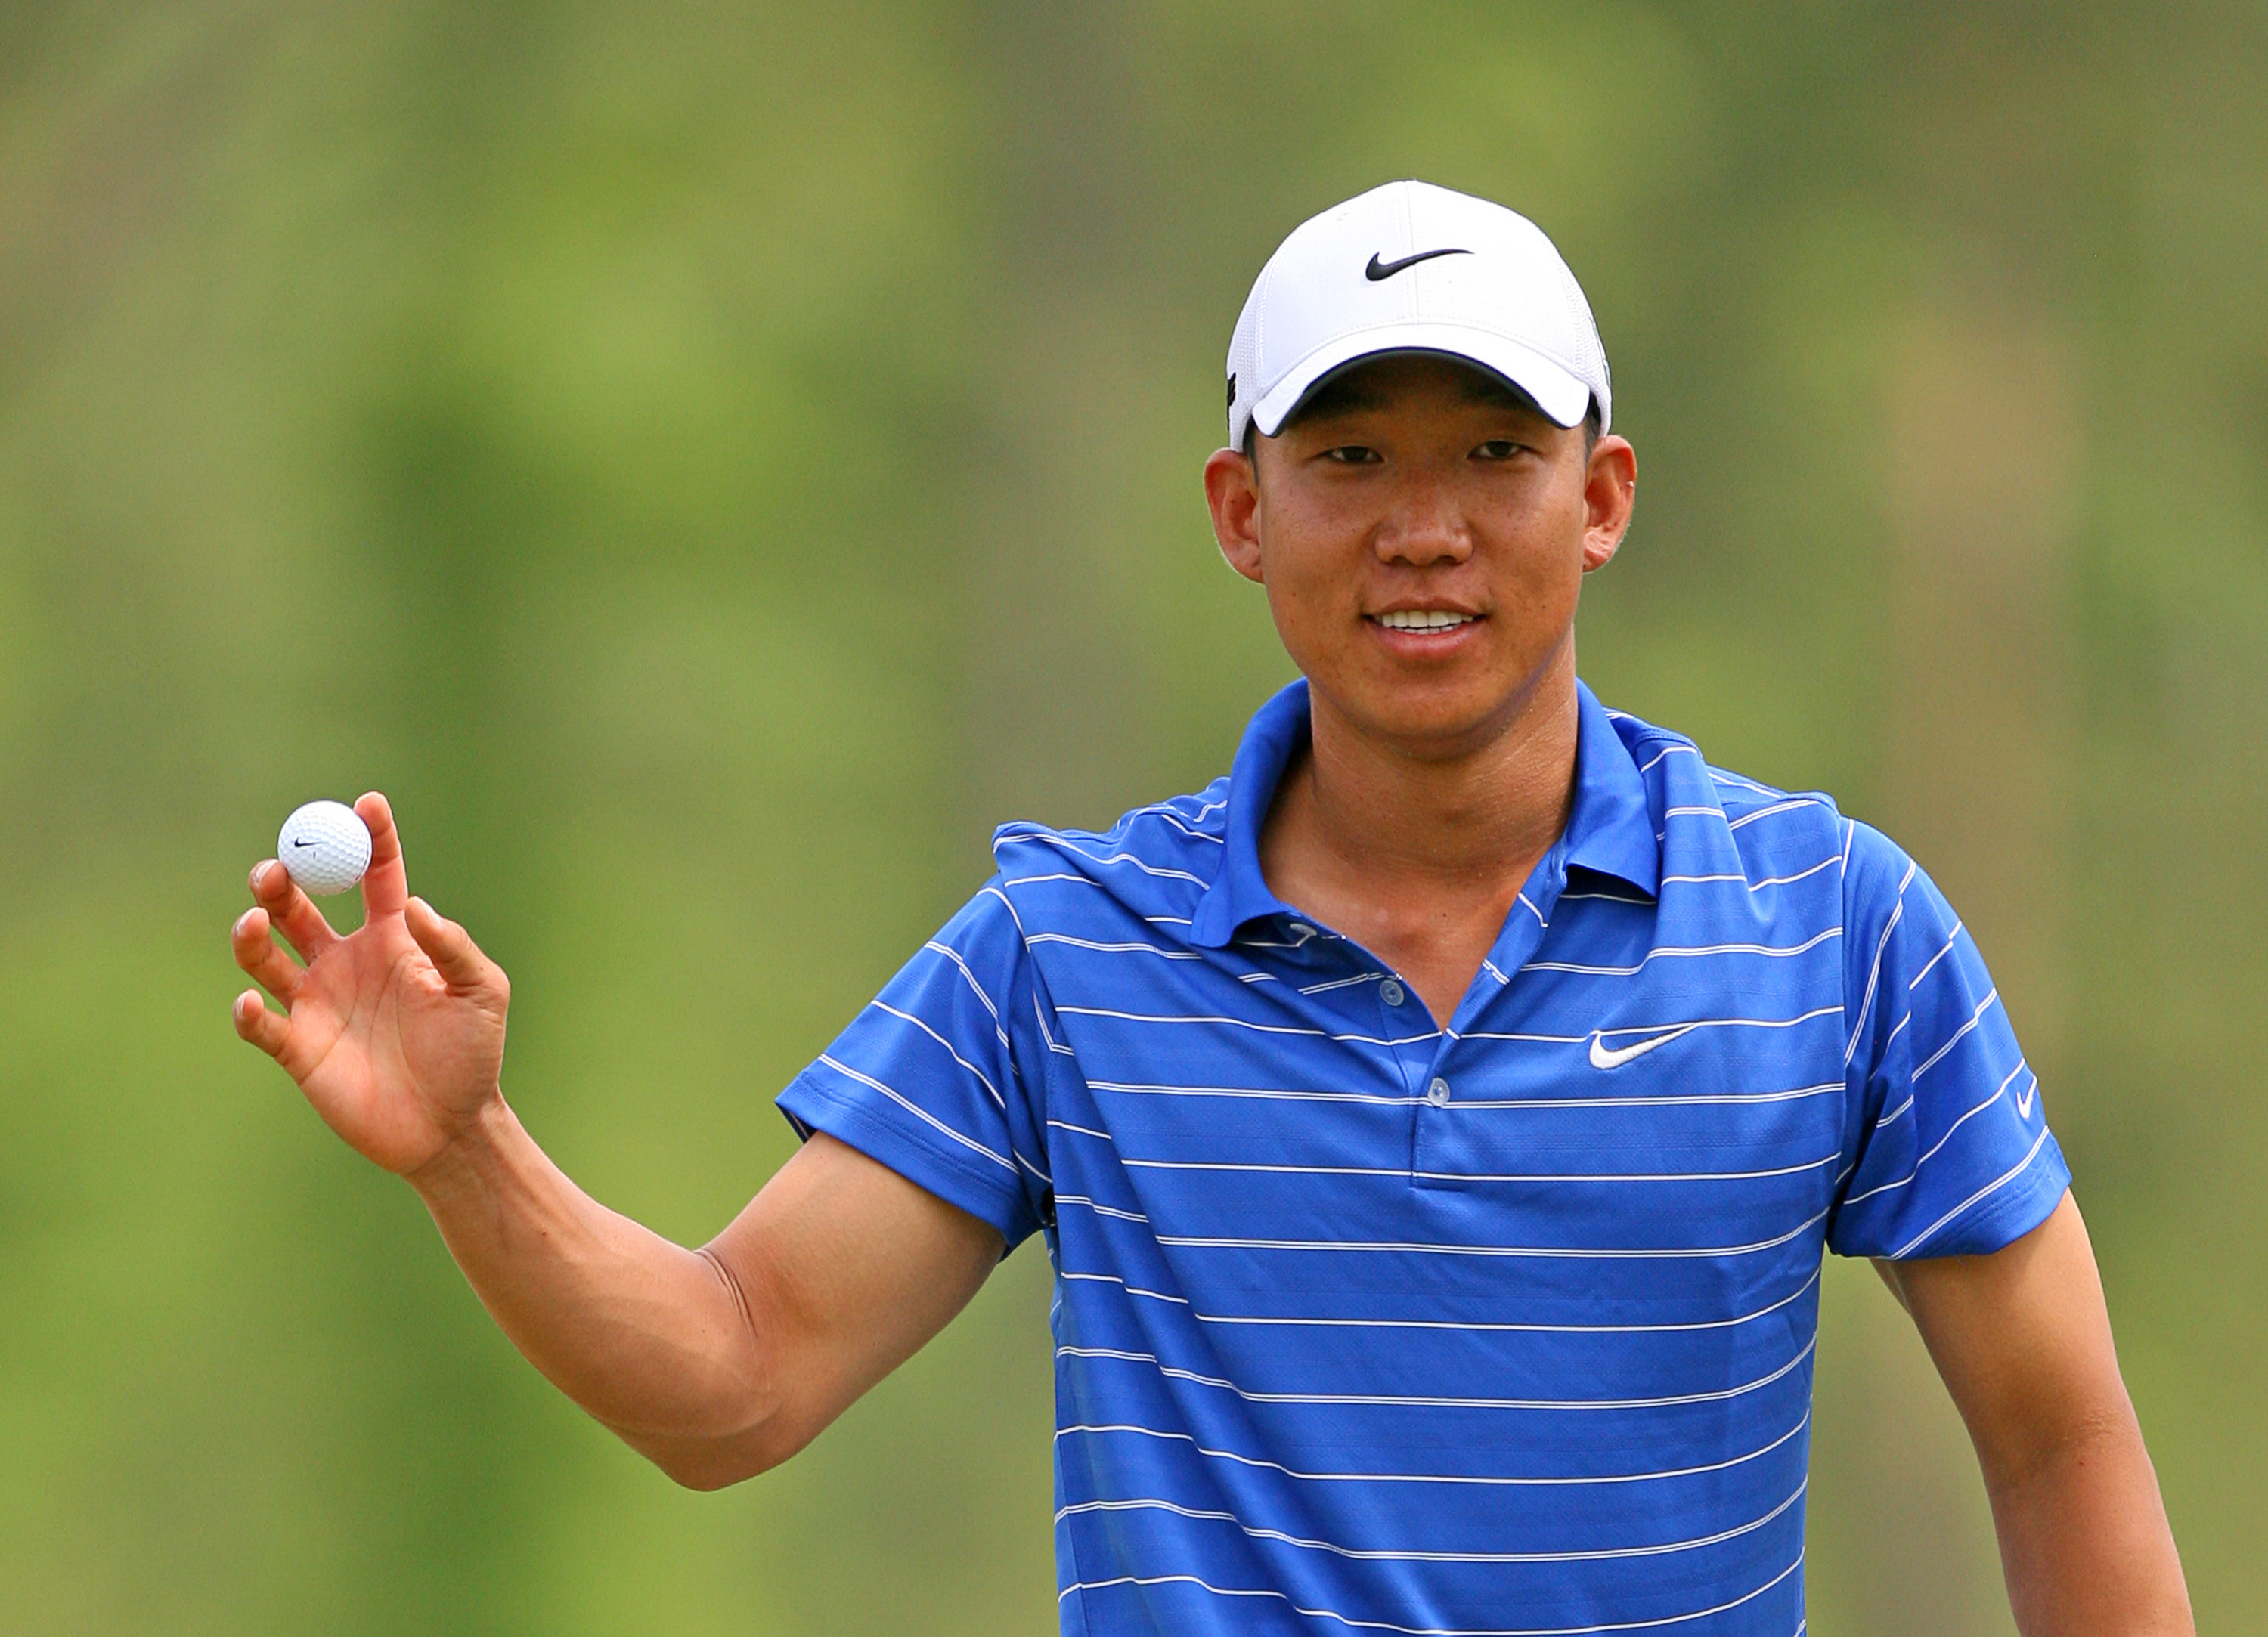 Anthony Kim joins the Nike family in 2006.